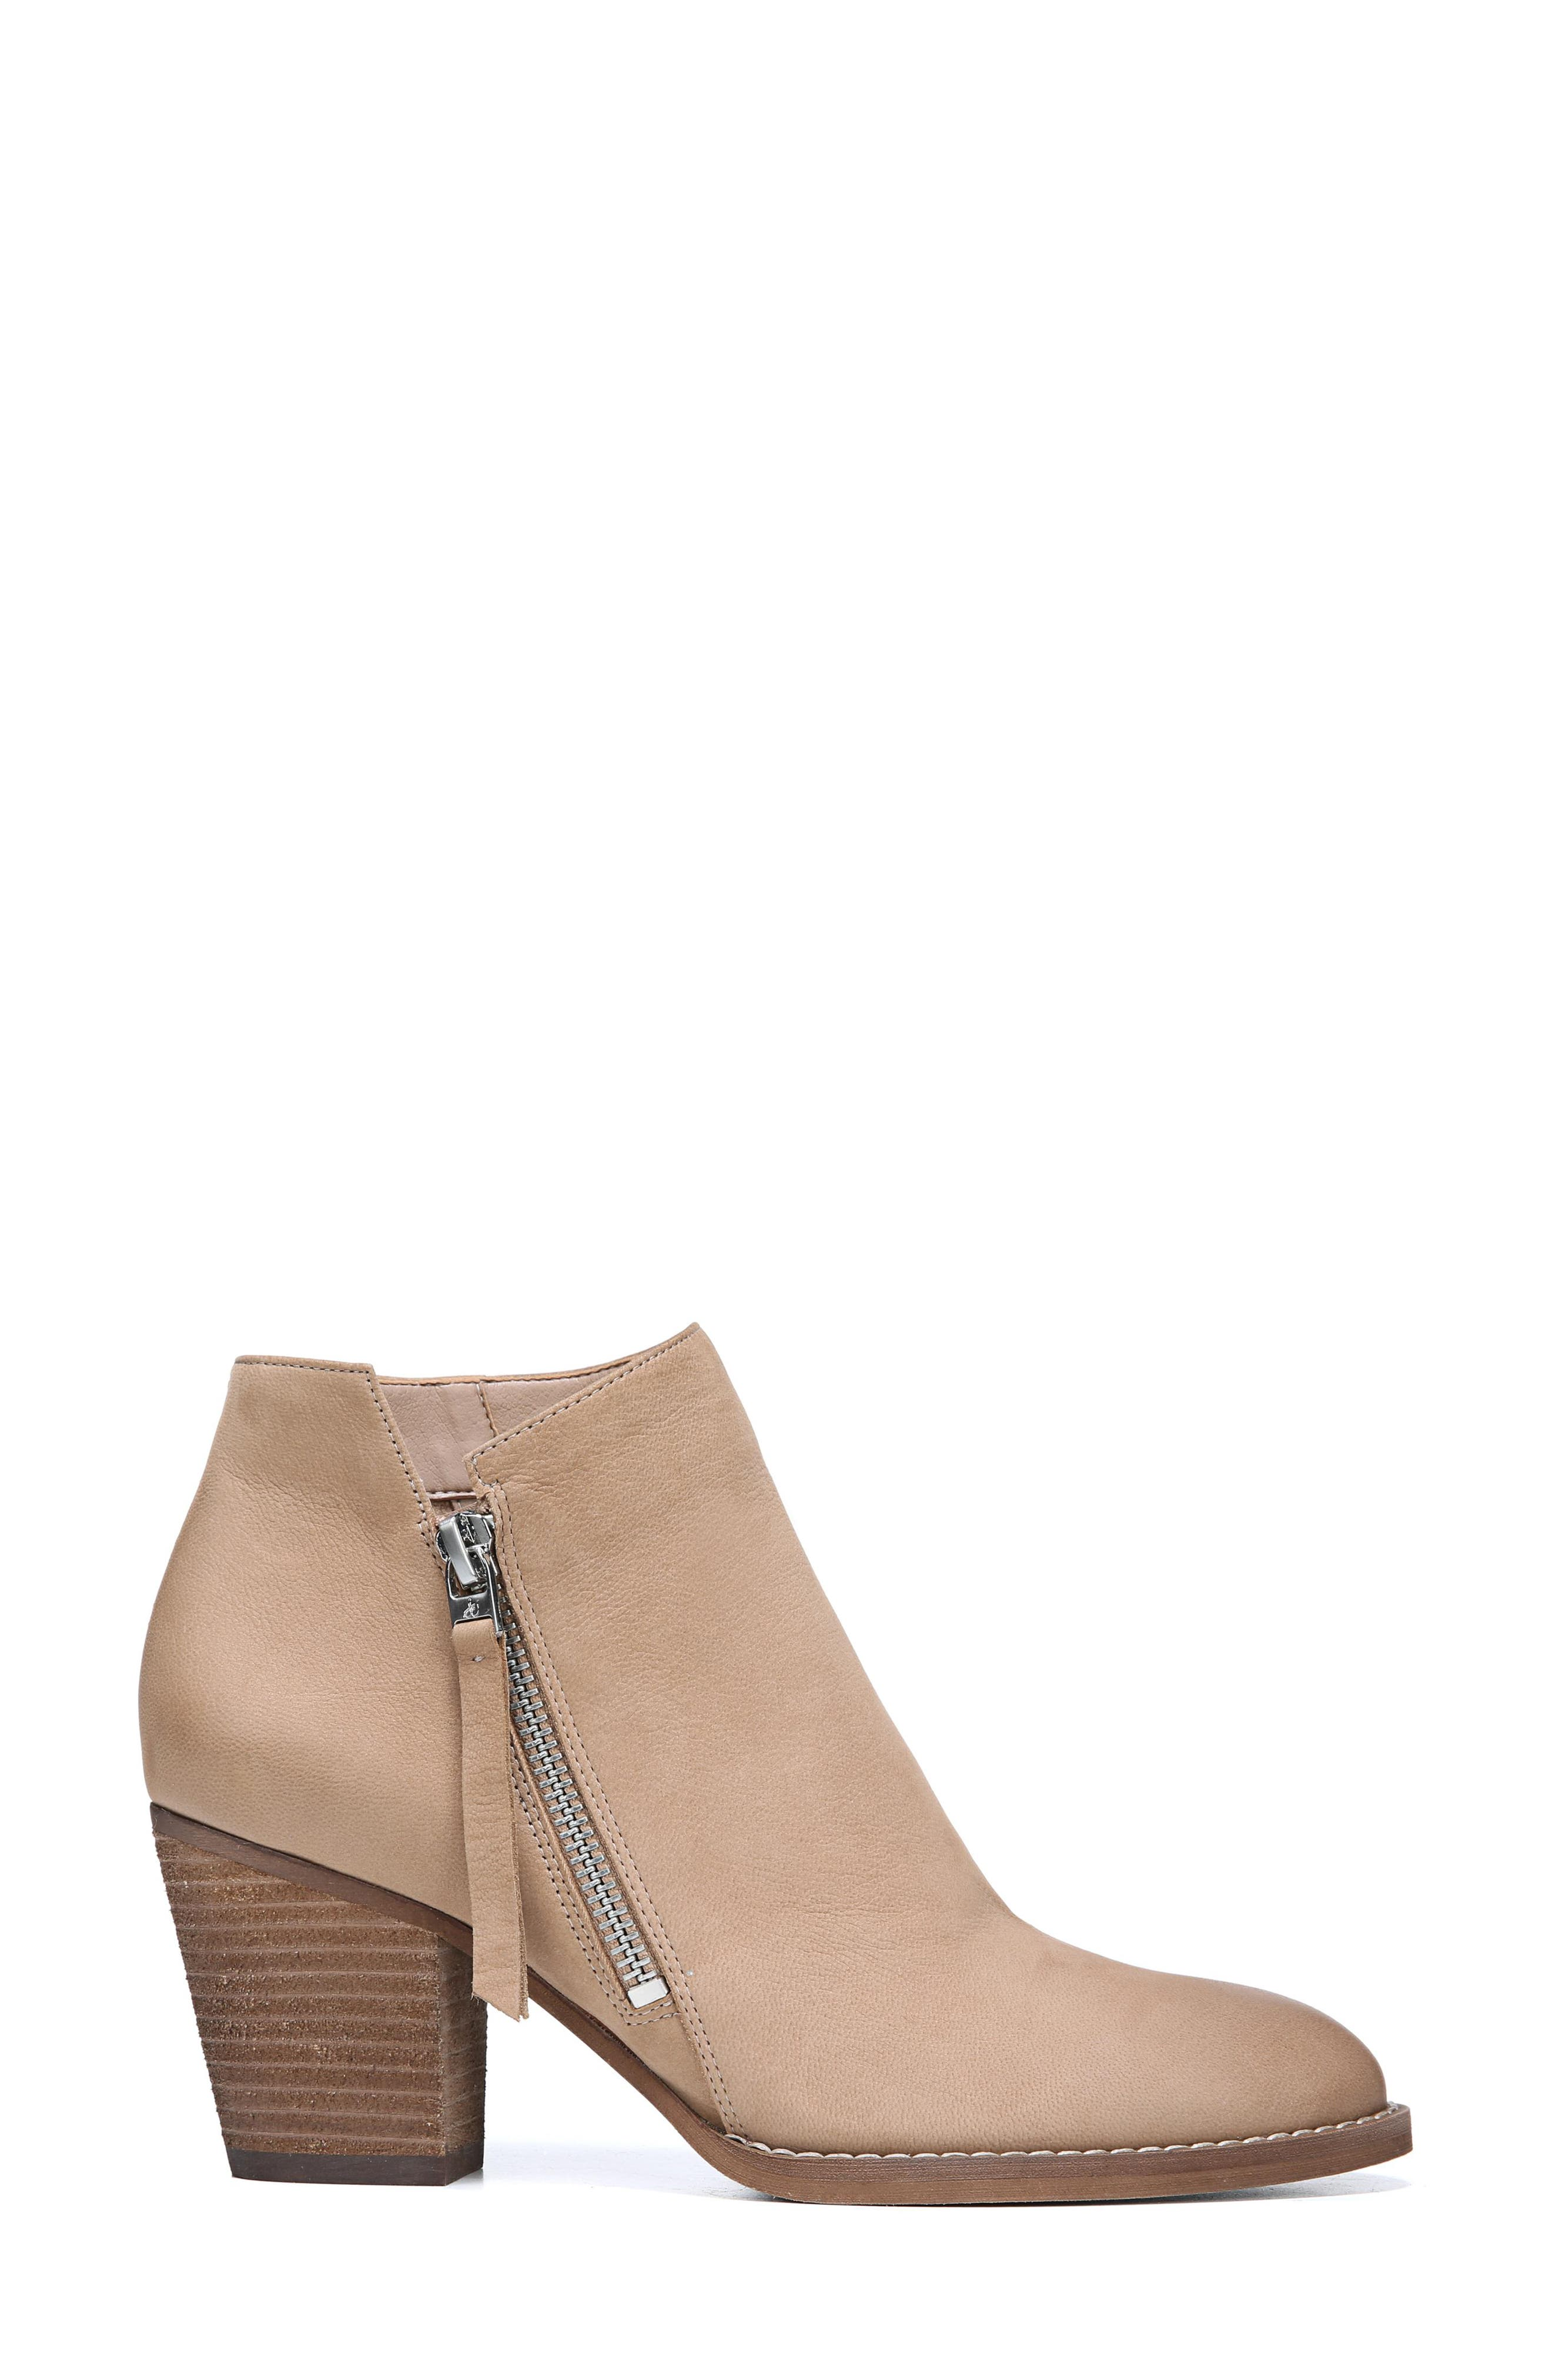 Macon Bootie,                             Alternate thumbnail 5, color,                             Golden Caramel Nubuck Leather